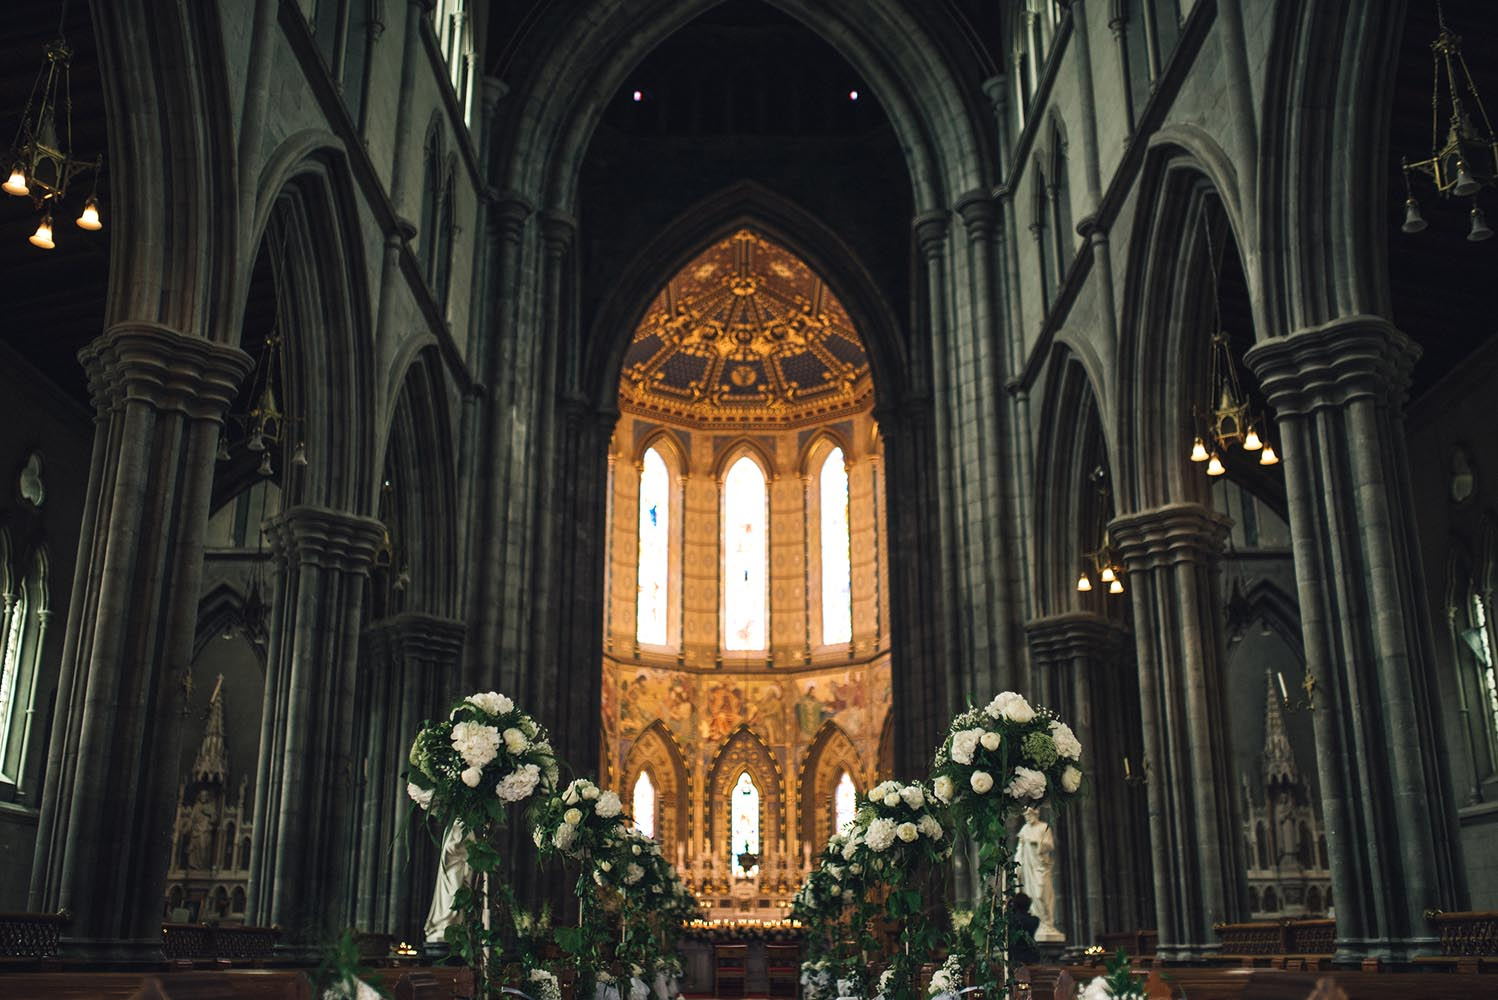 Interior of Kilkenny Cathedral